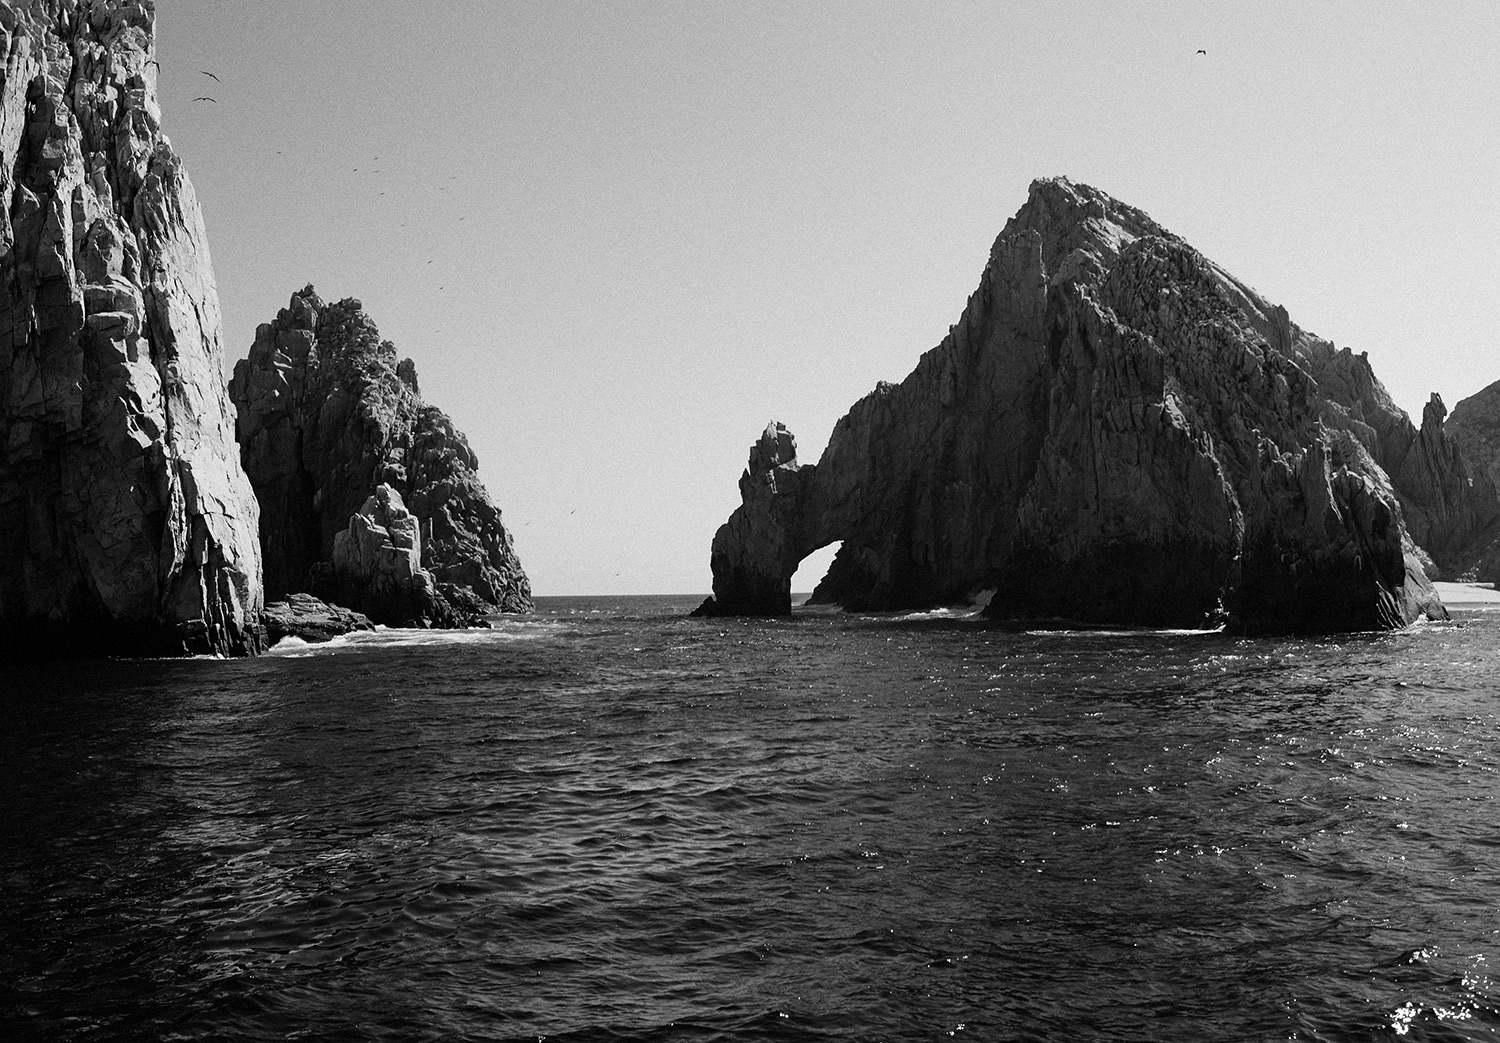 A black and white image of large sea stacks